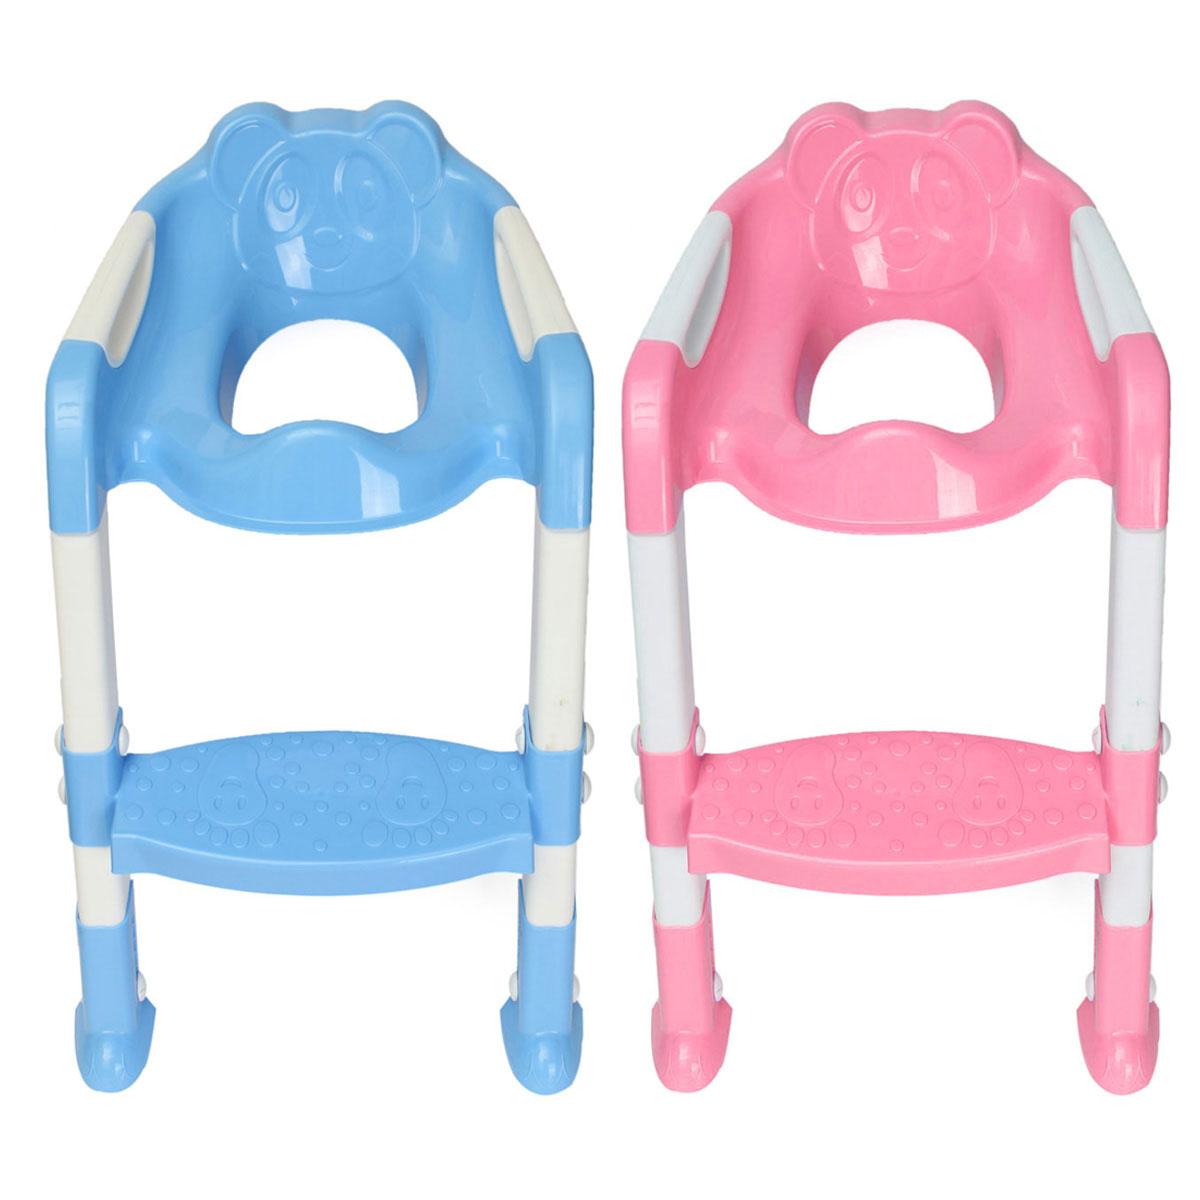 Potty Chairs For Toddlers Baby Toddler Kids Potty Toilet Training Safety Adjustable